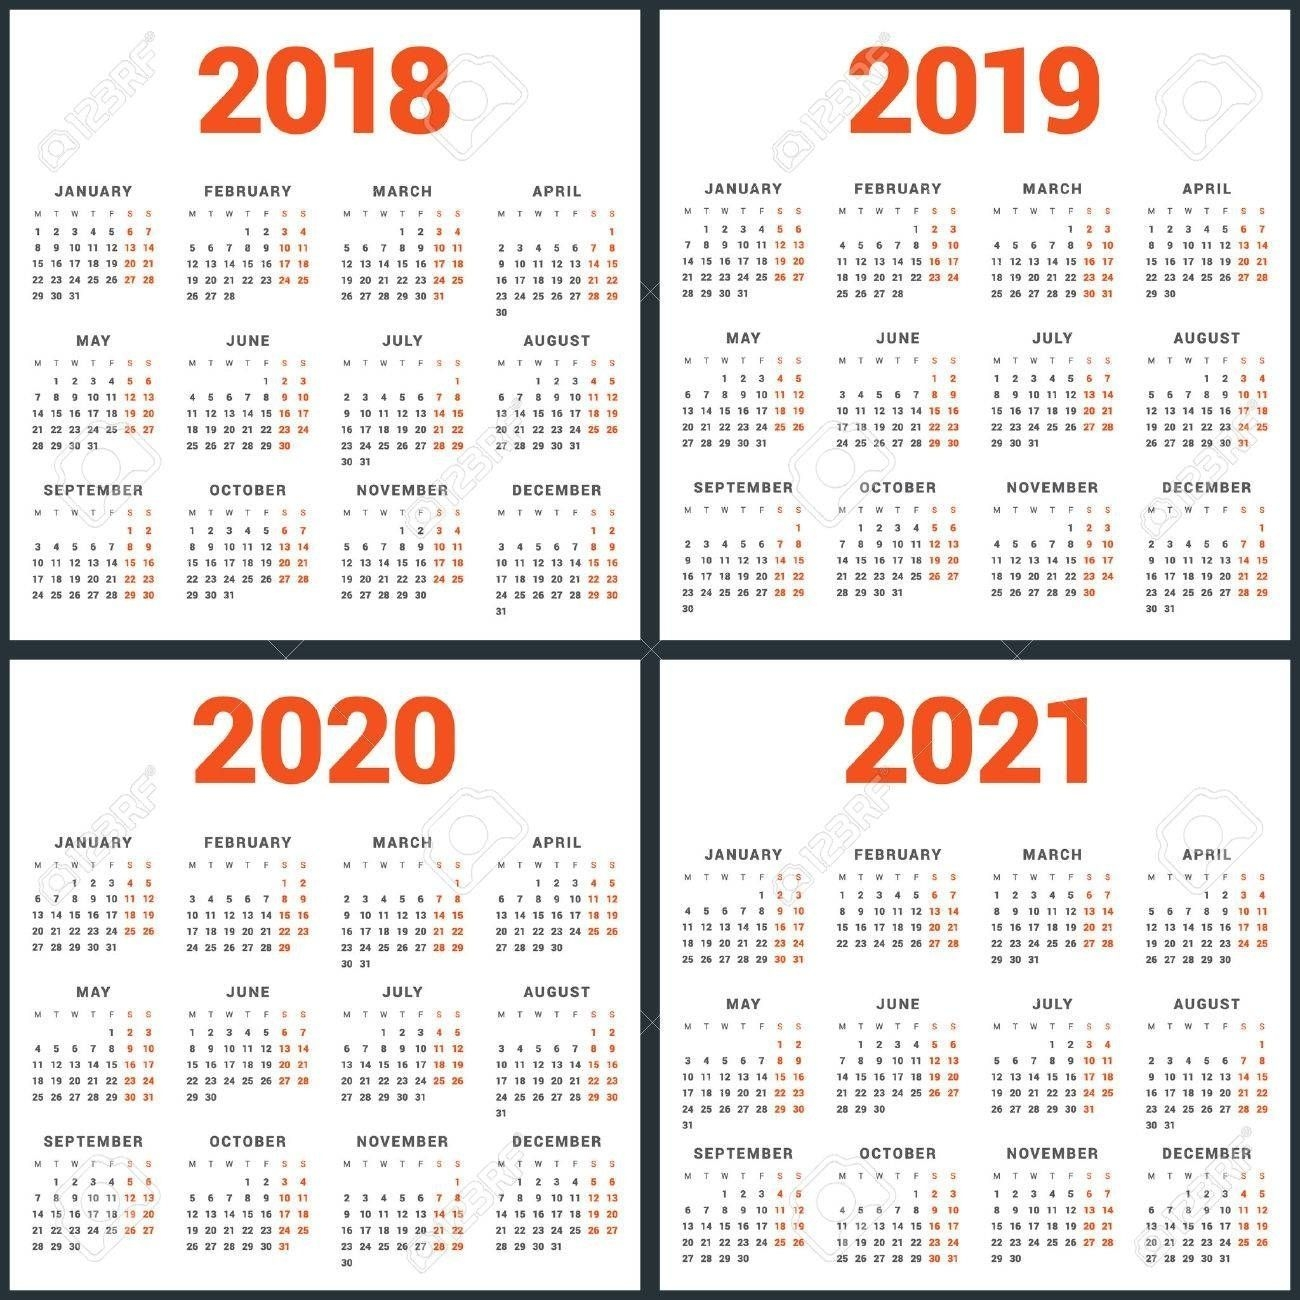 2020 8 x 10 calendars in 2020 | national holiday calendar